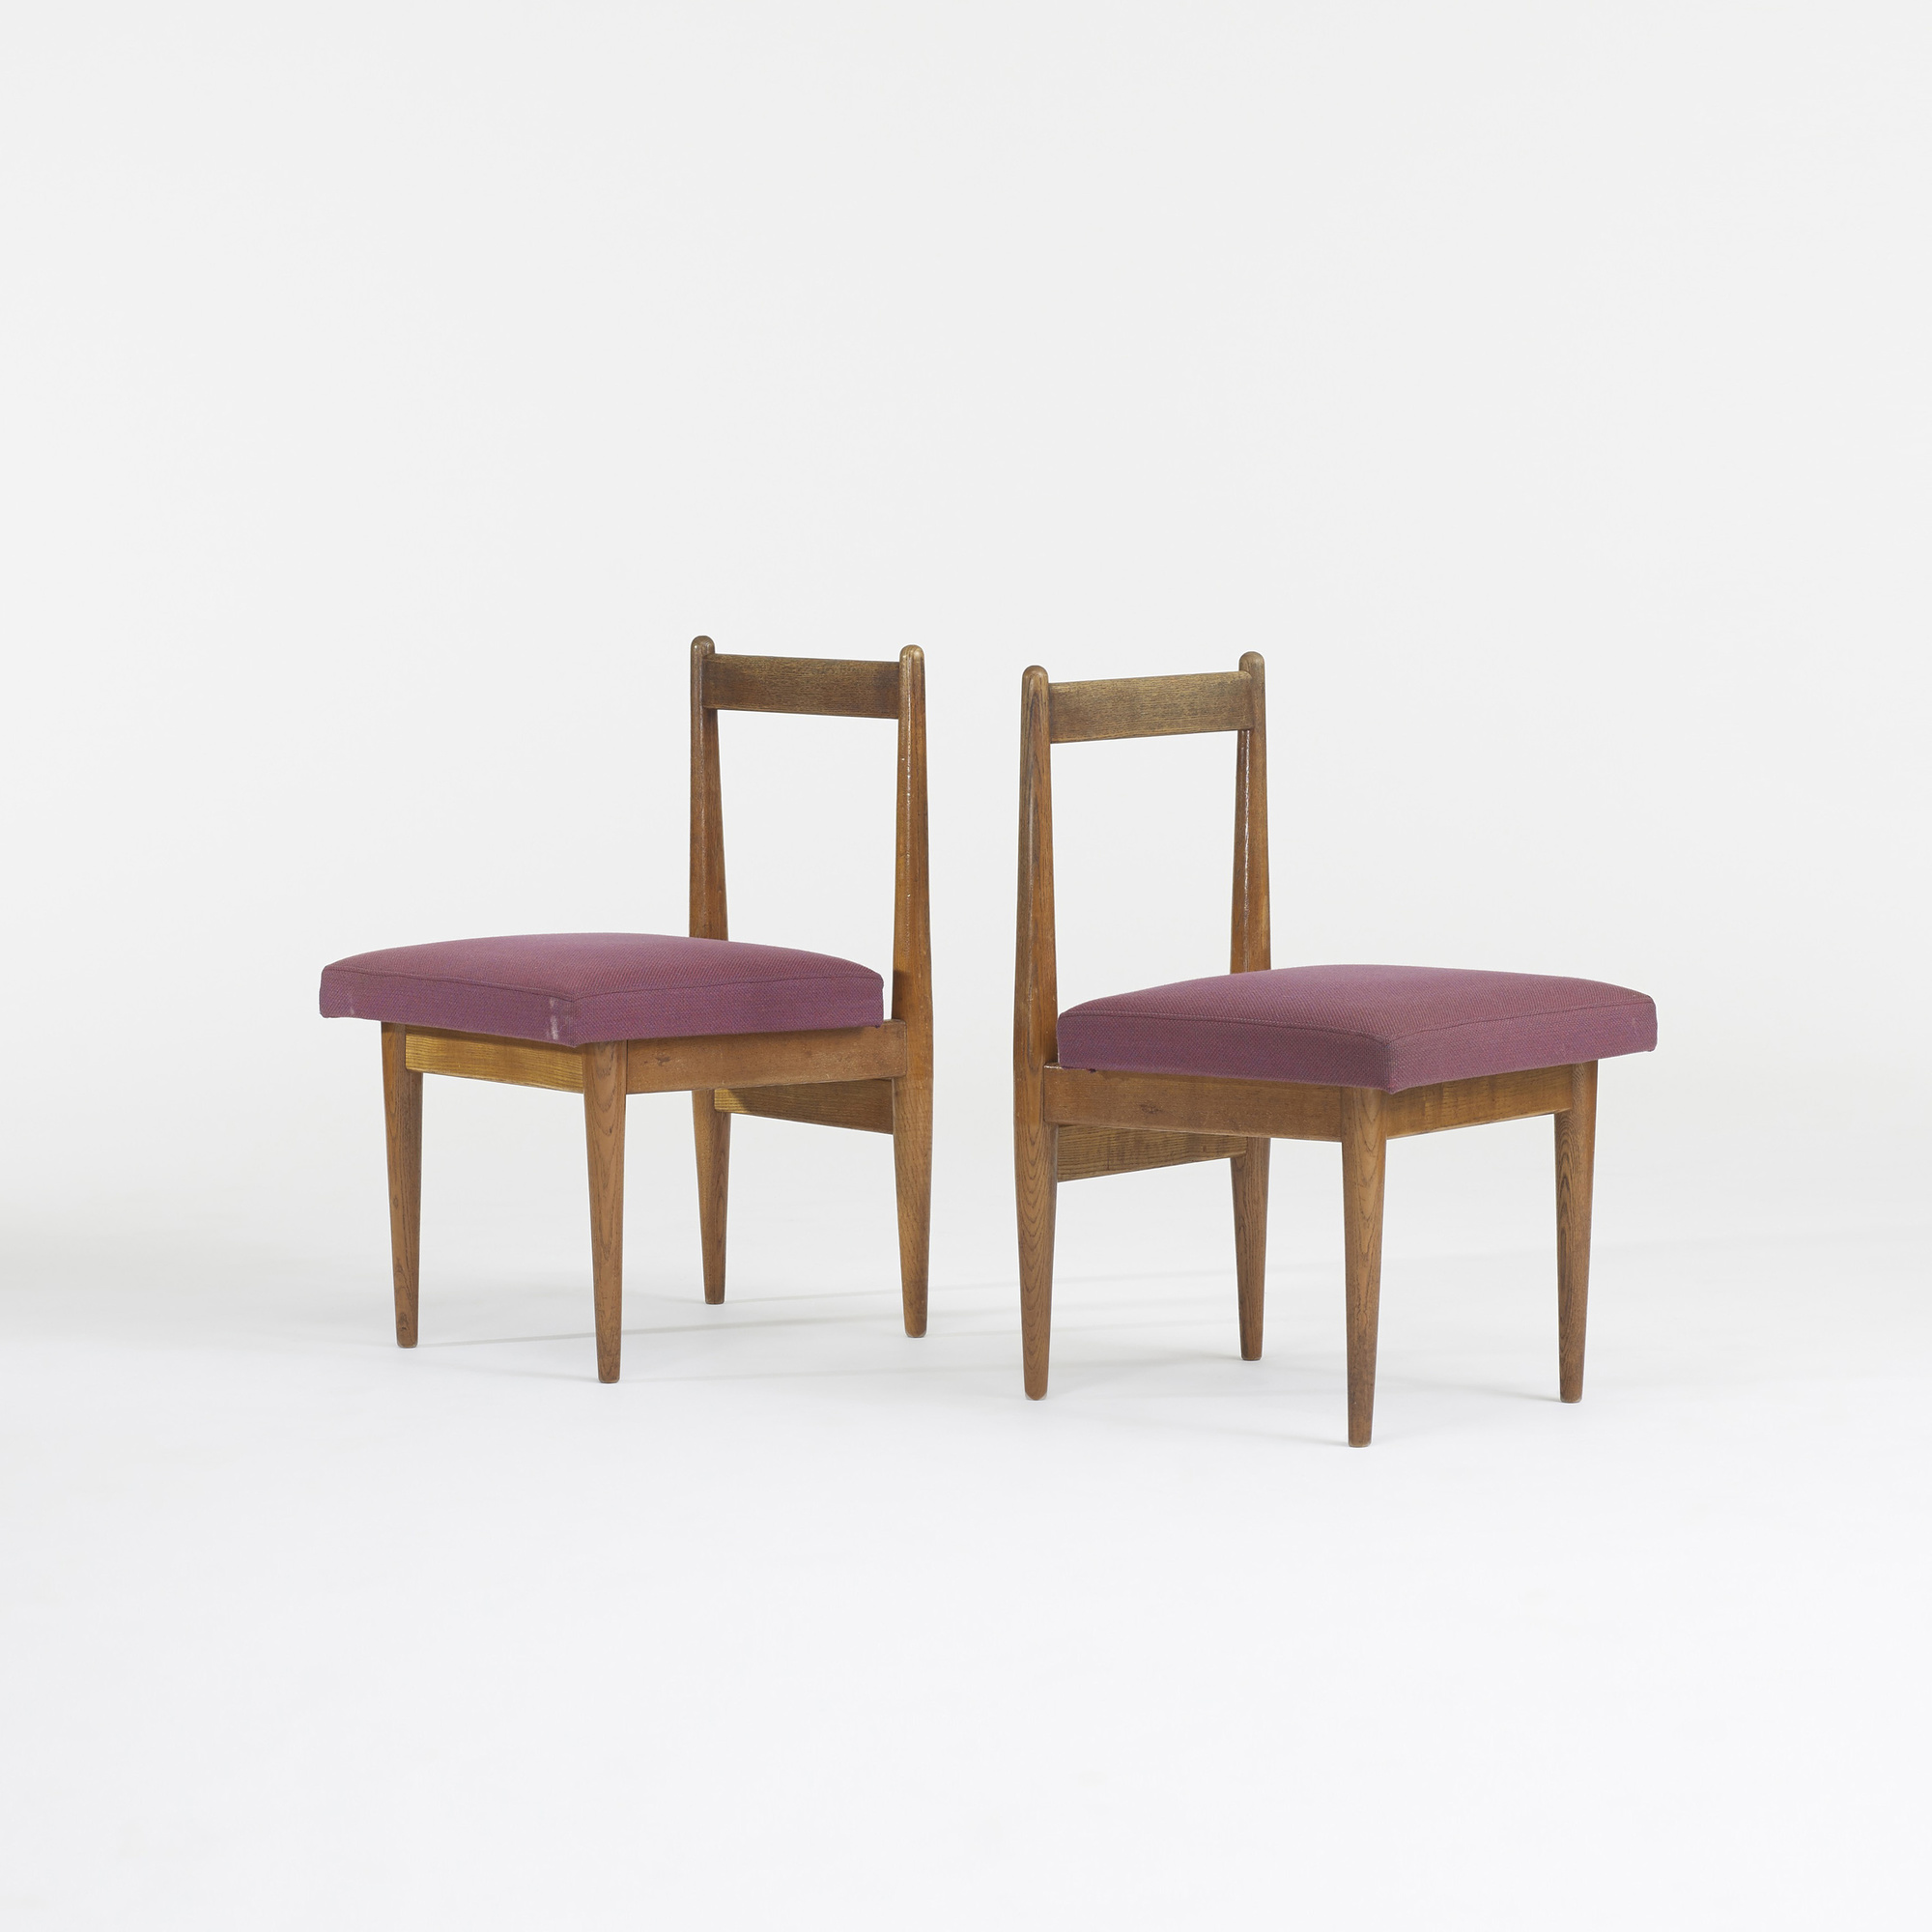 544: Katsuo Matsumura / dining chairs, set of four (2 of 2)